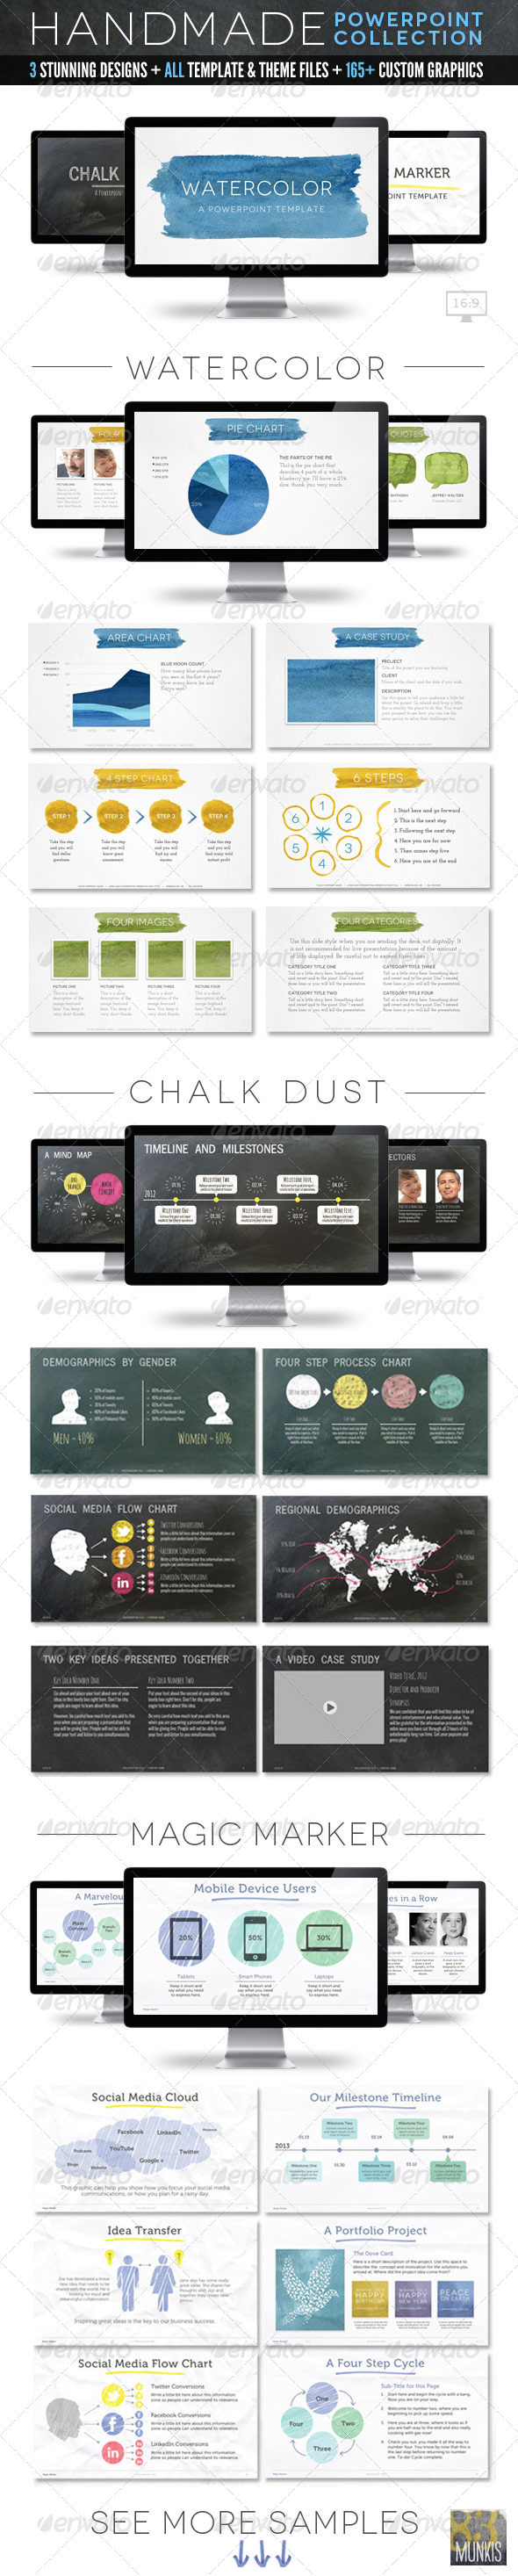 GraphicRiver Handmade Collection Powerpoint Template Bundle 3814968